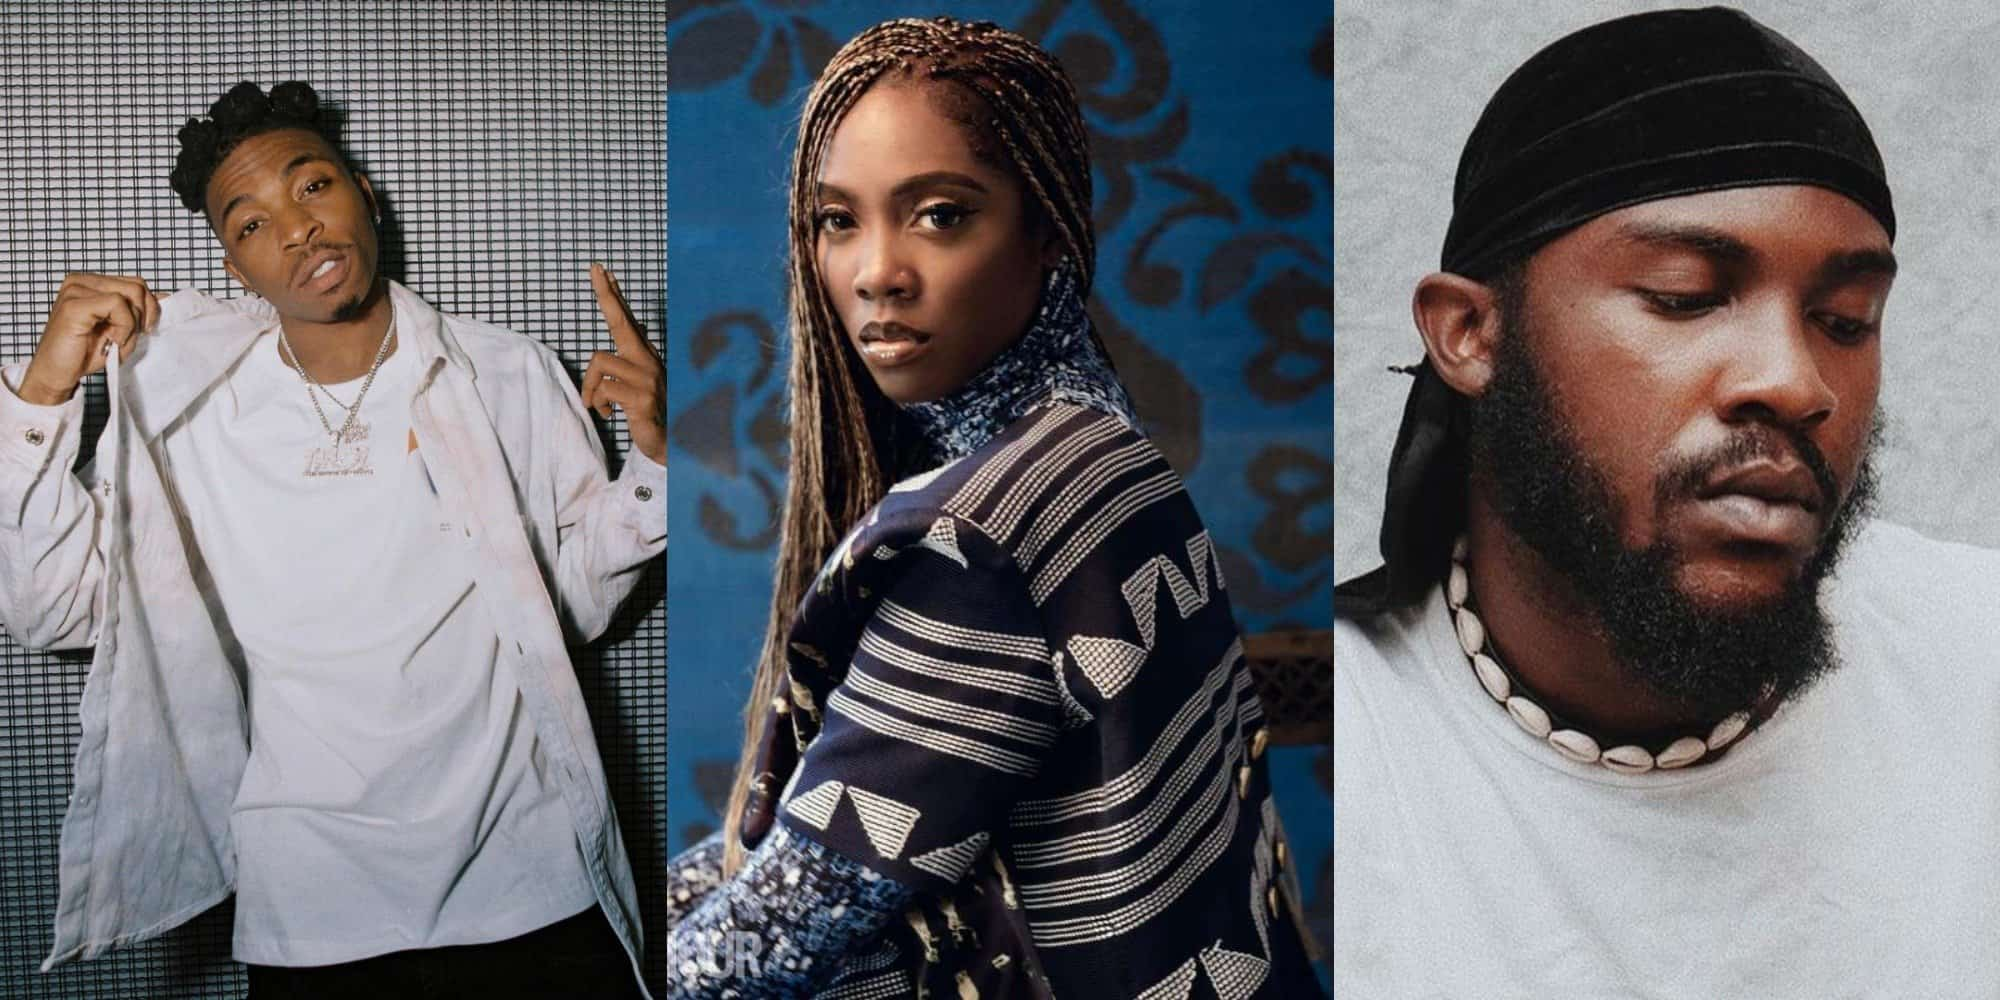 Songs of the Day: New Music From Mayorkun, Tiwa Savage, Tay Iwar & More